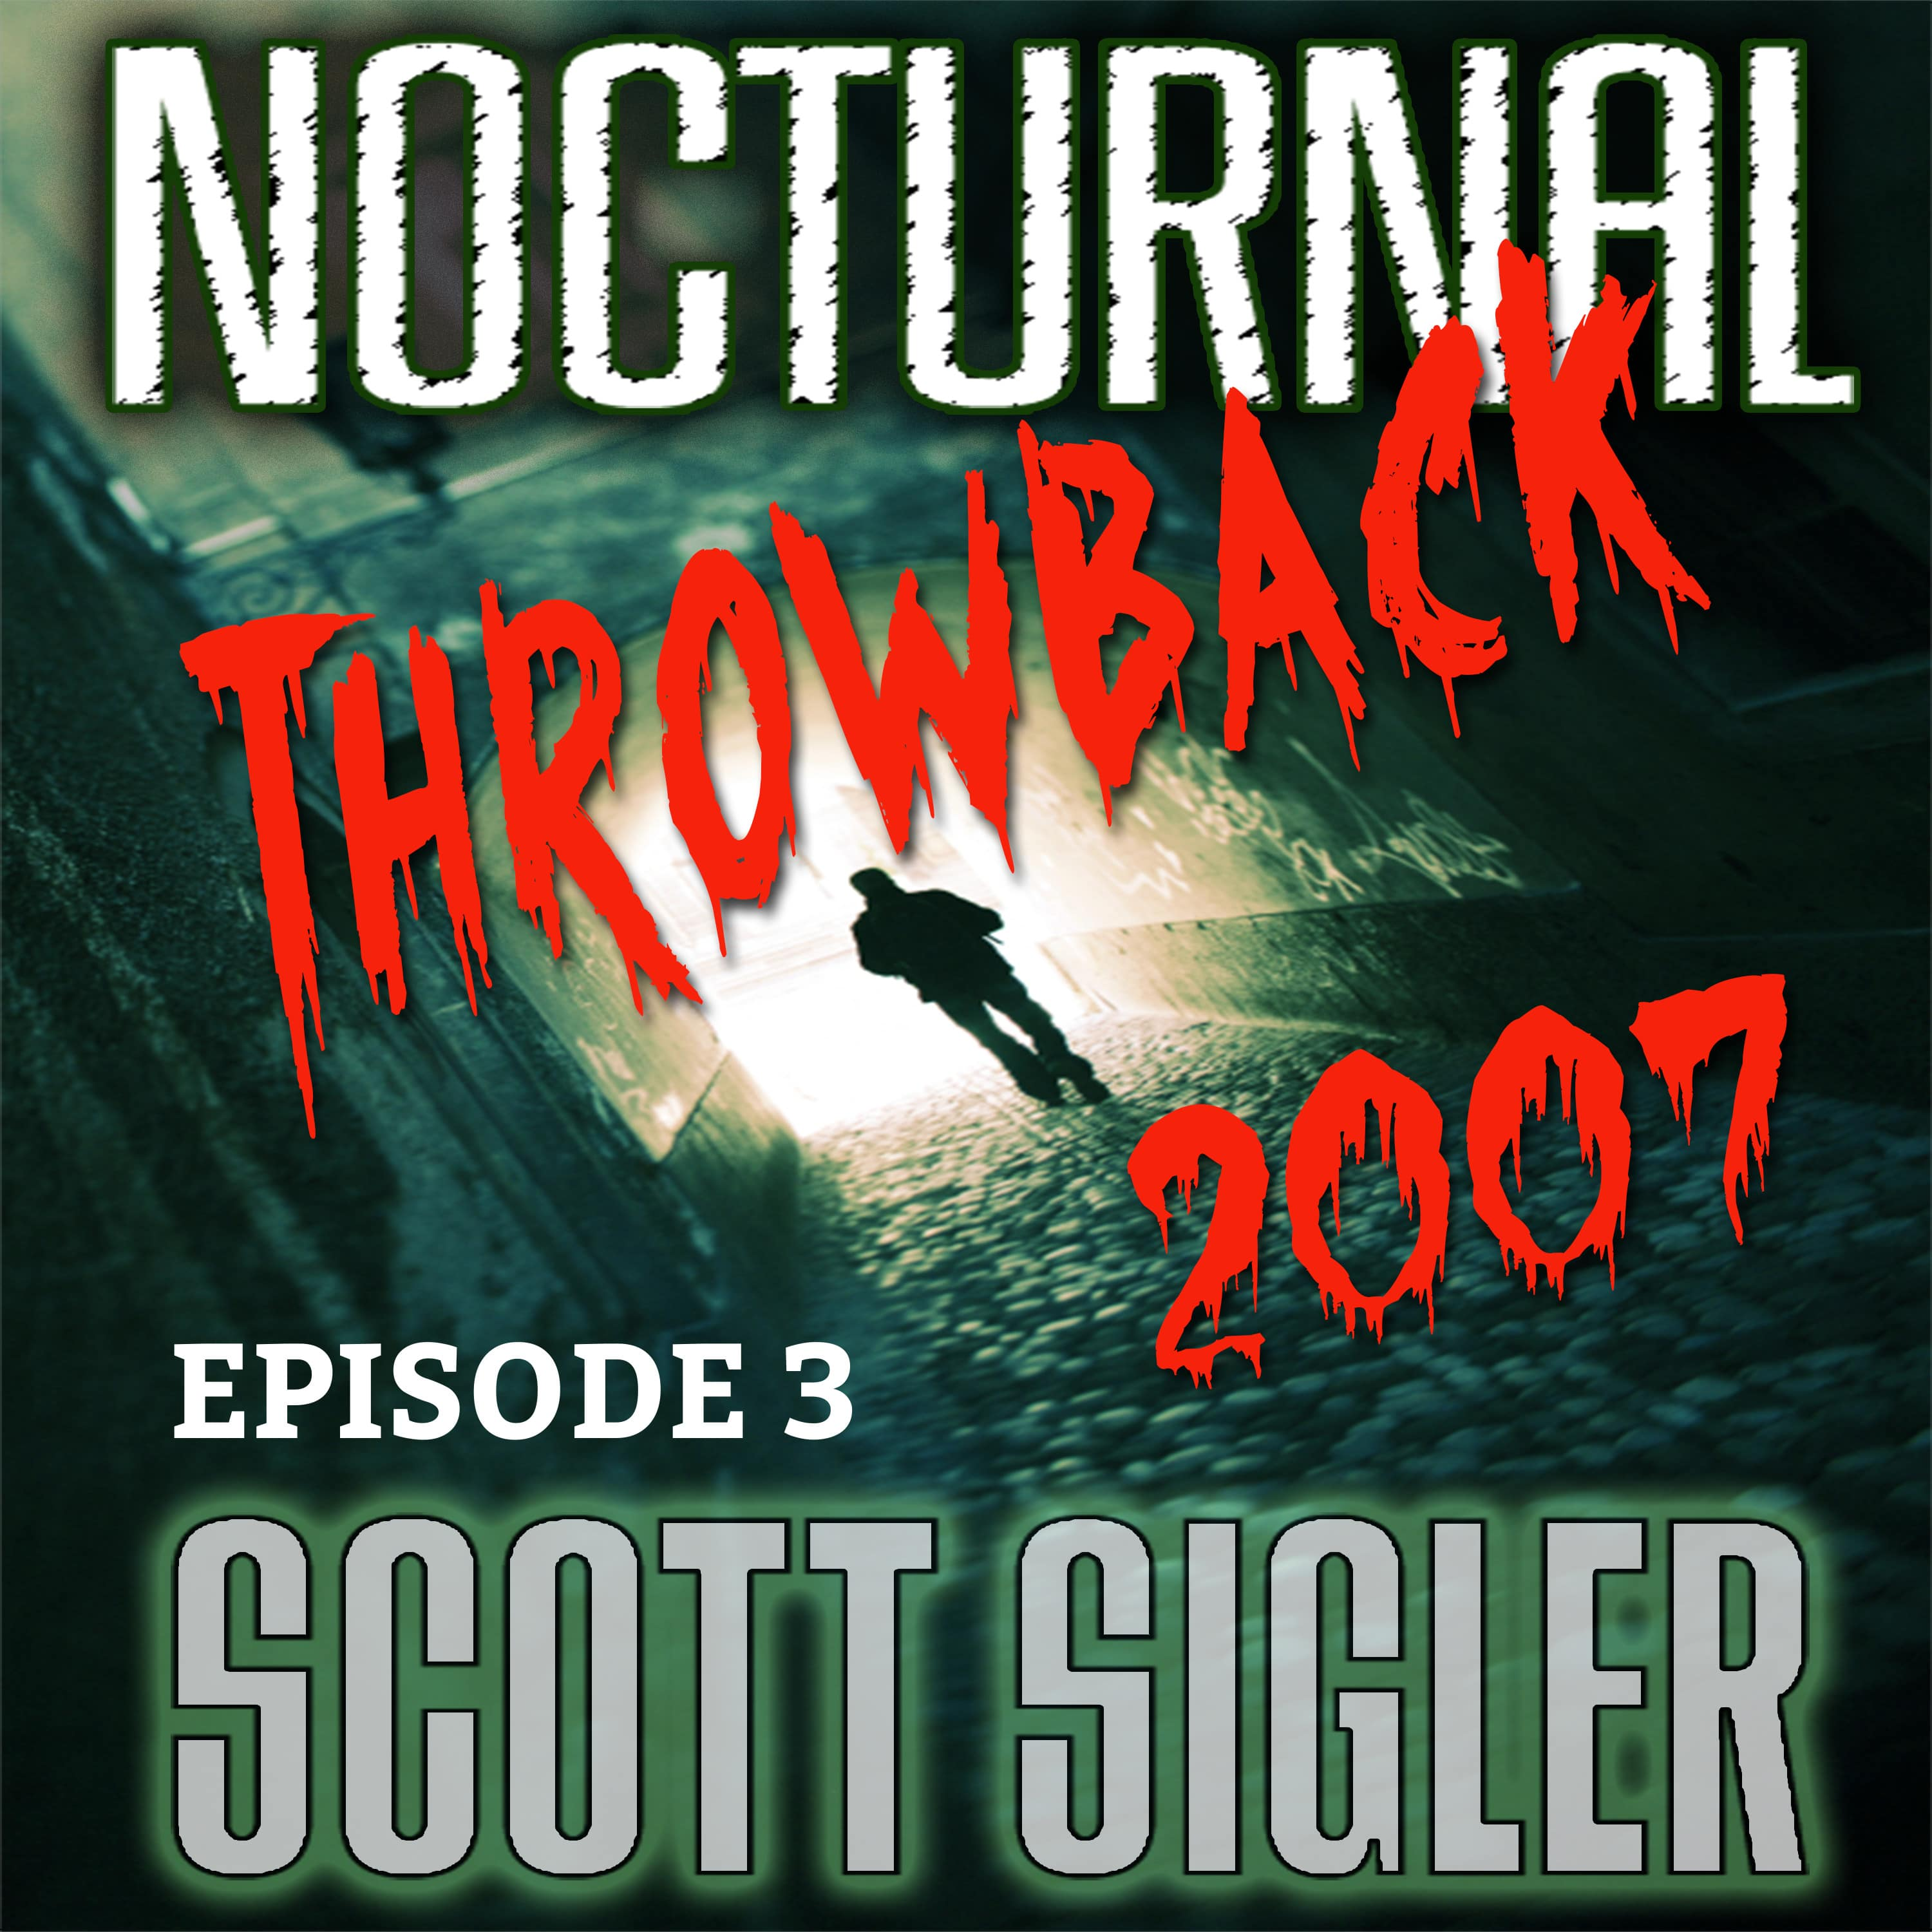 NOCTURNAL Throwback Episode #3